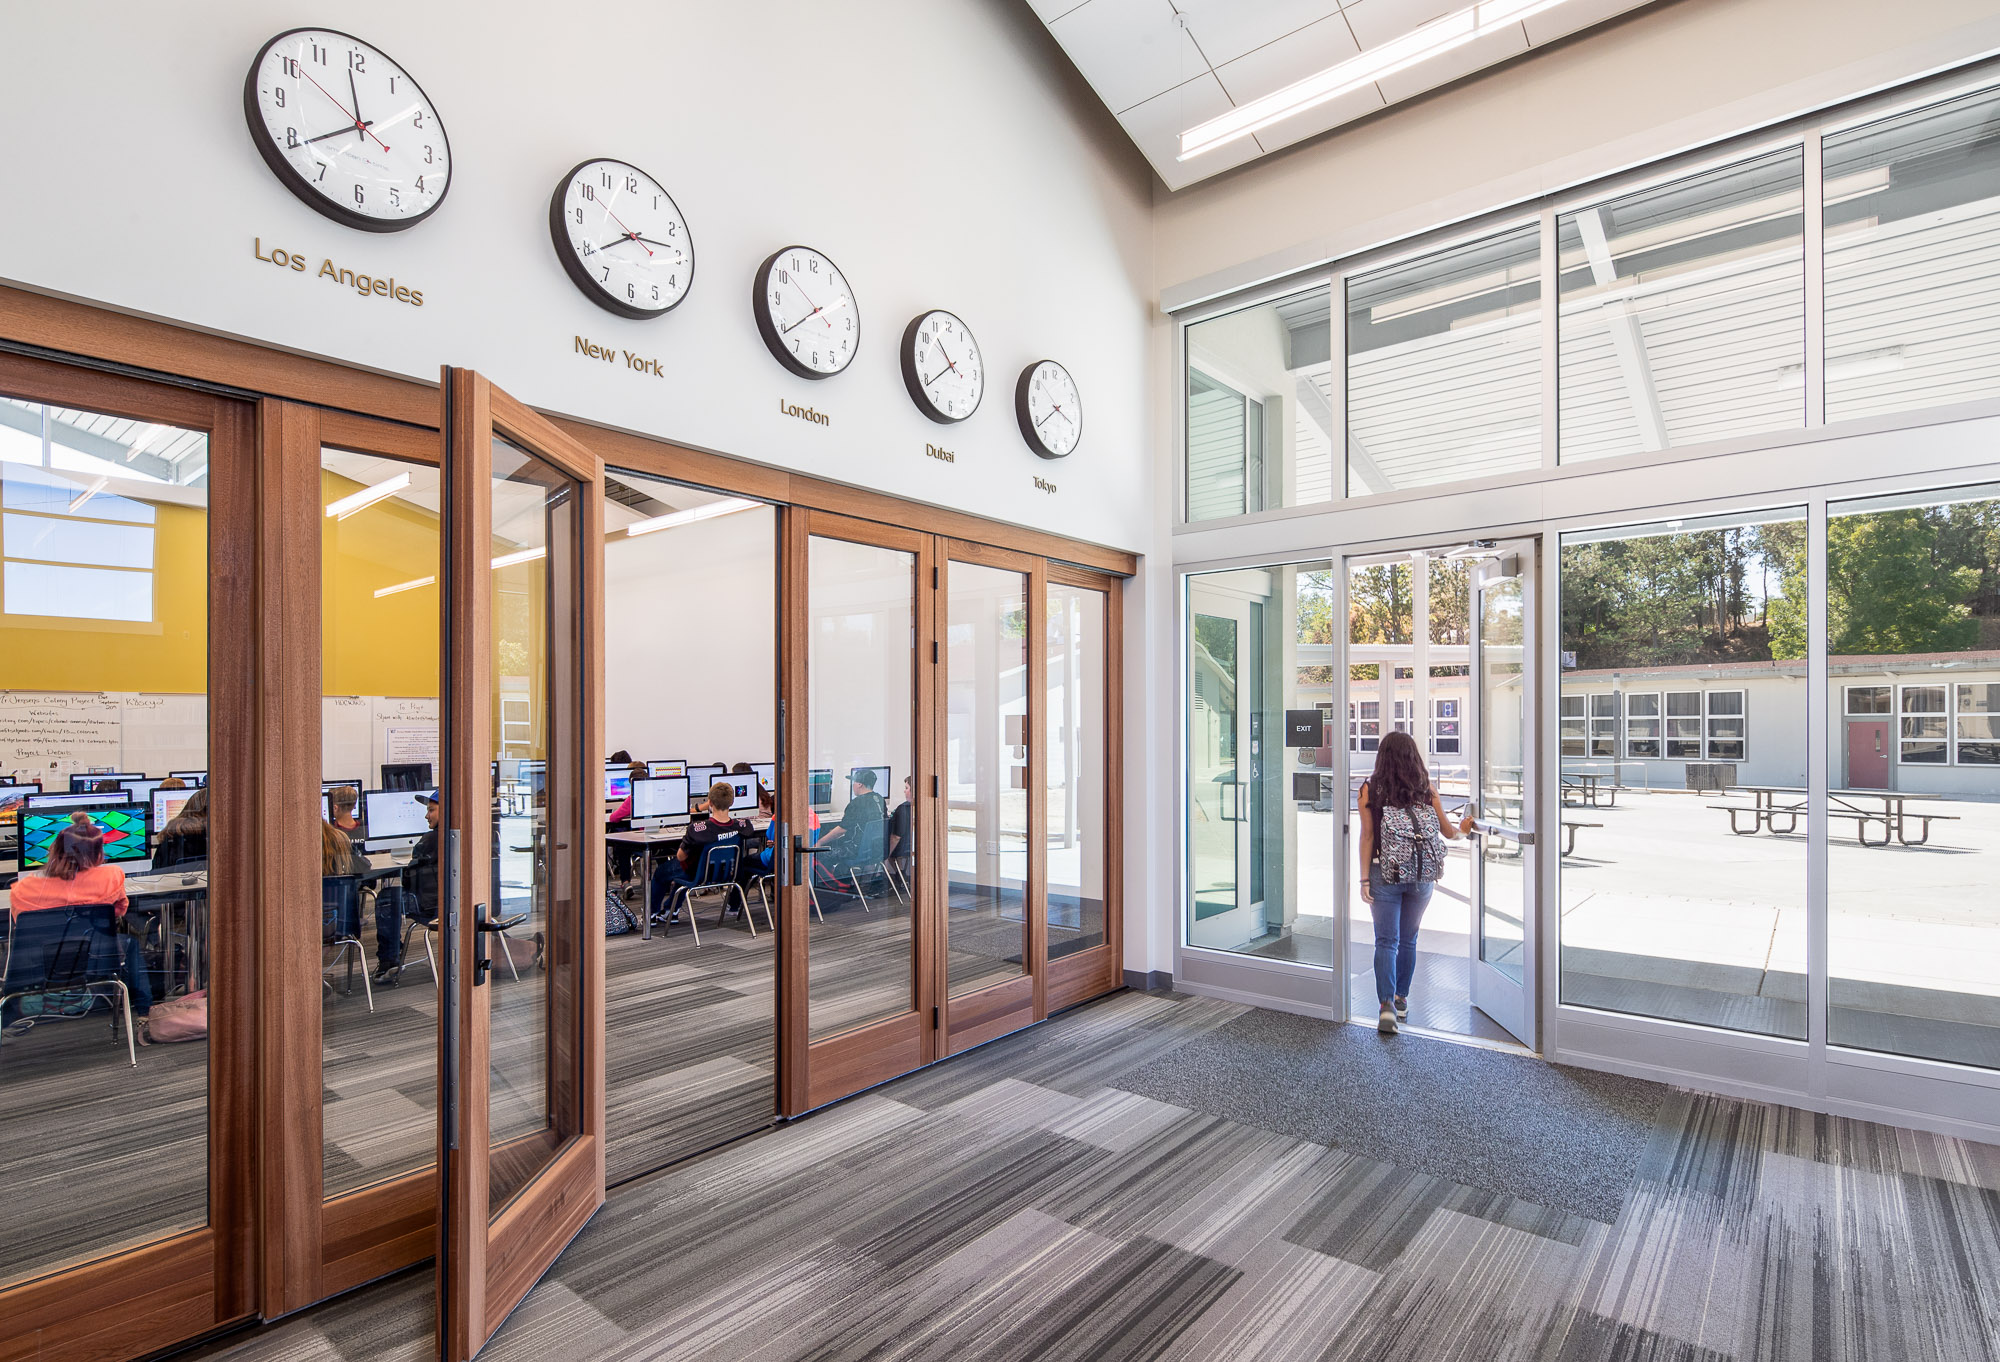 Institutional architectural photography educational architectural photography architectural photography with people